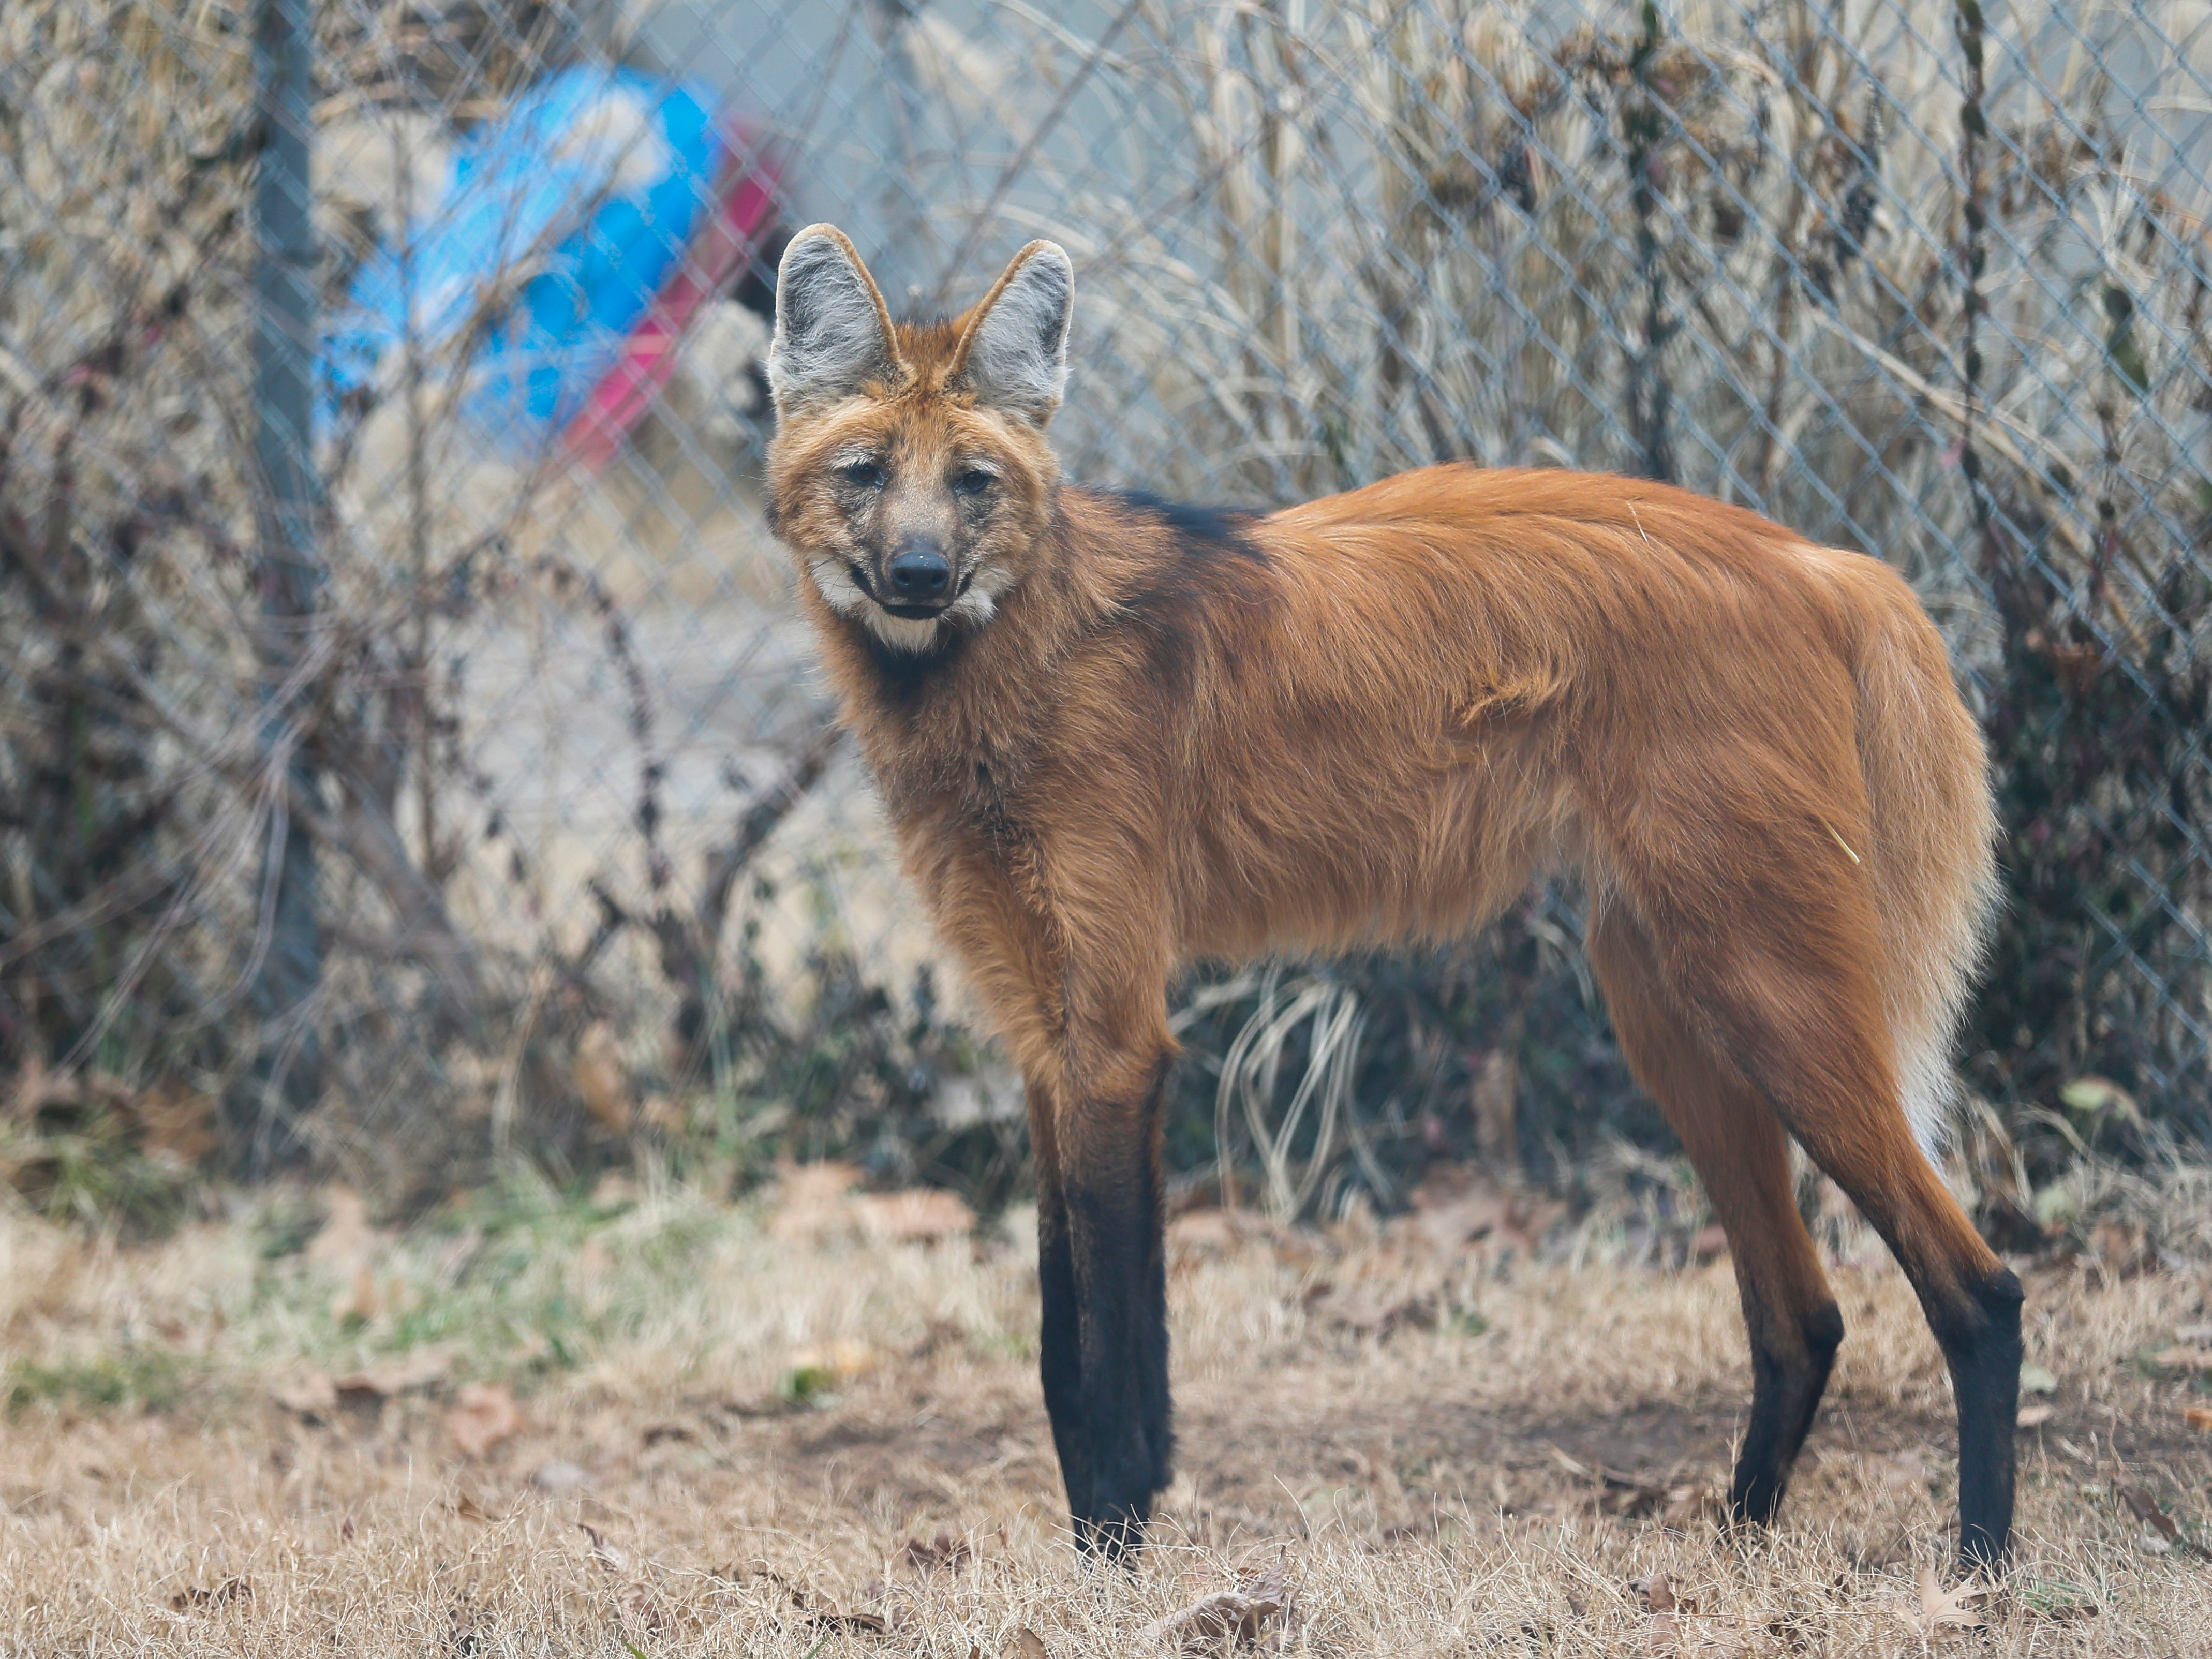 The maned wolf, which is often called a fox on stilts because of its fox-like appearance, is found in South America.